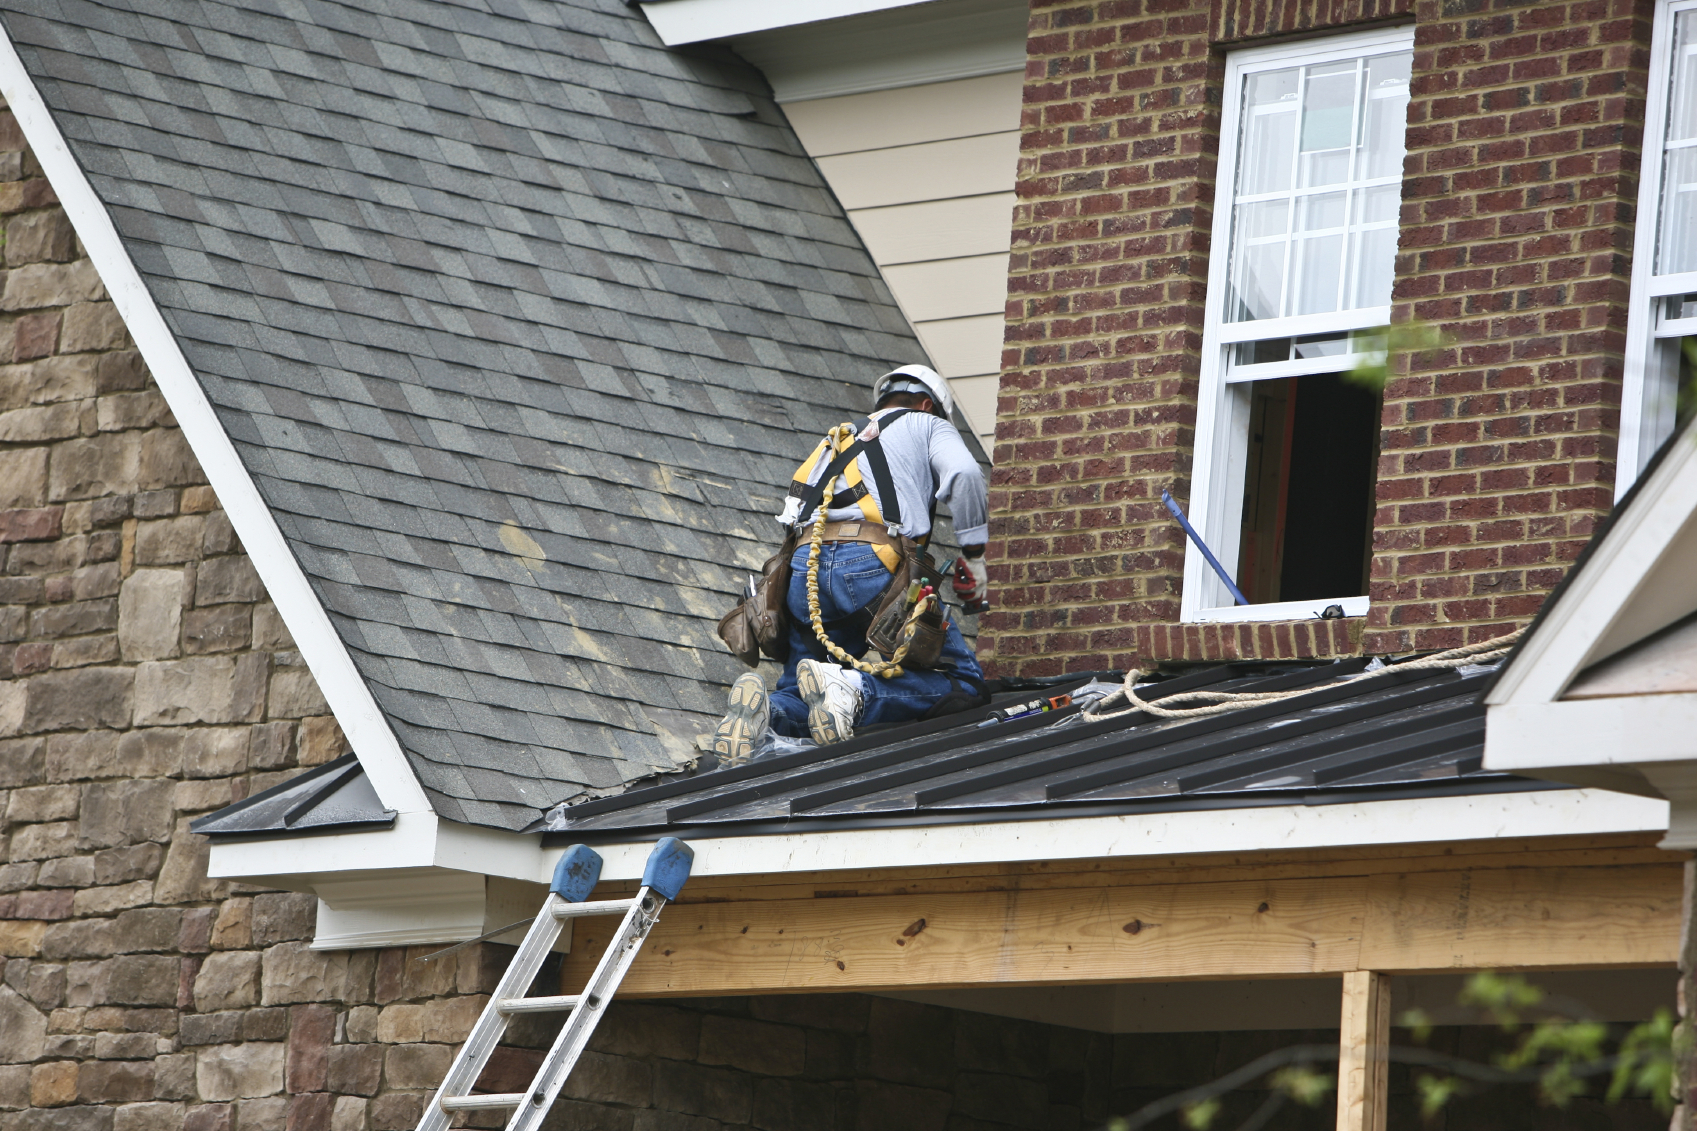 The Best Guide to Hiring the Best Roofing Contractor